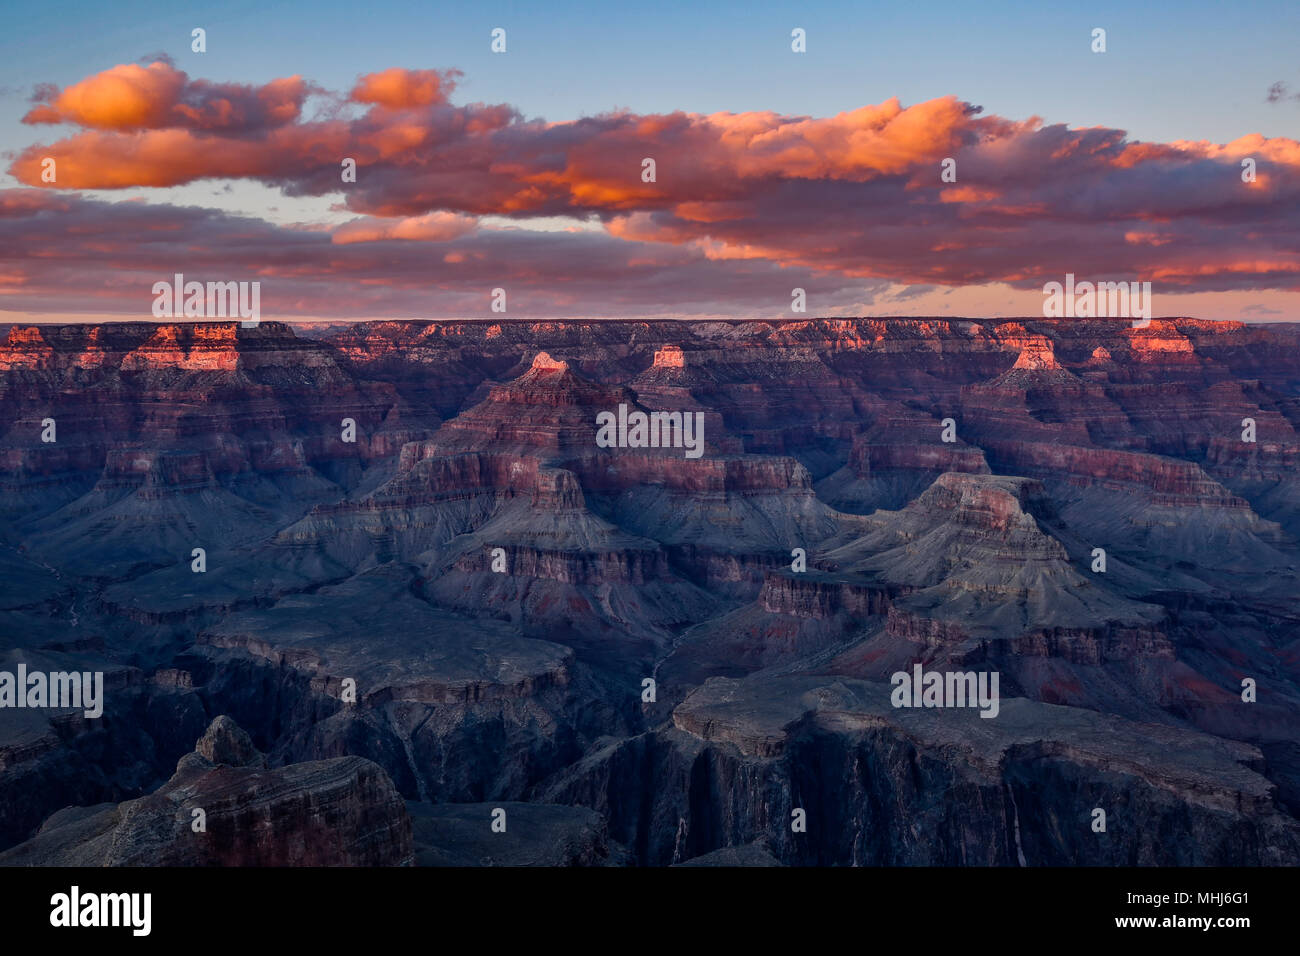 Rock formations and canyons from Maricopa Point, Grand Canyon National Park, Arizona USA - Stock Image